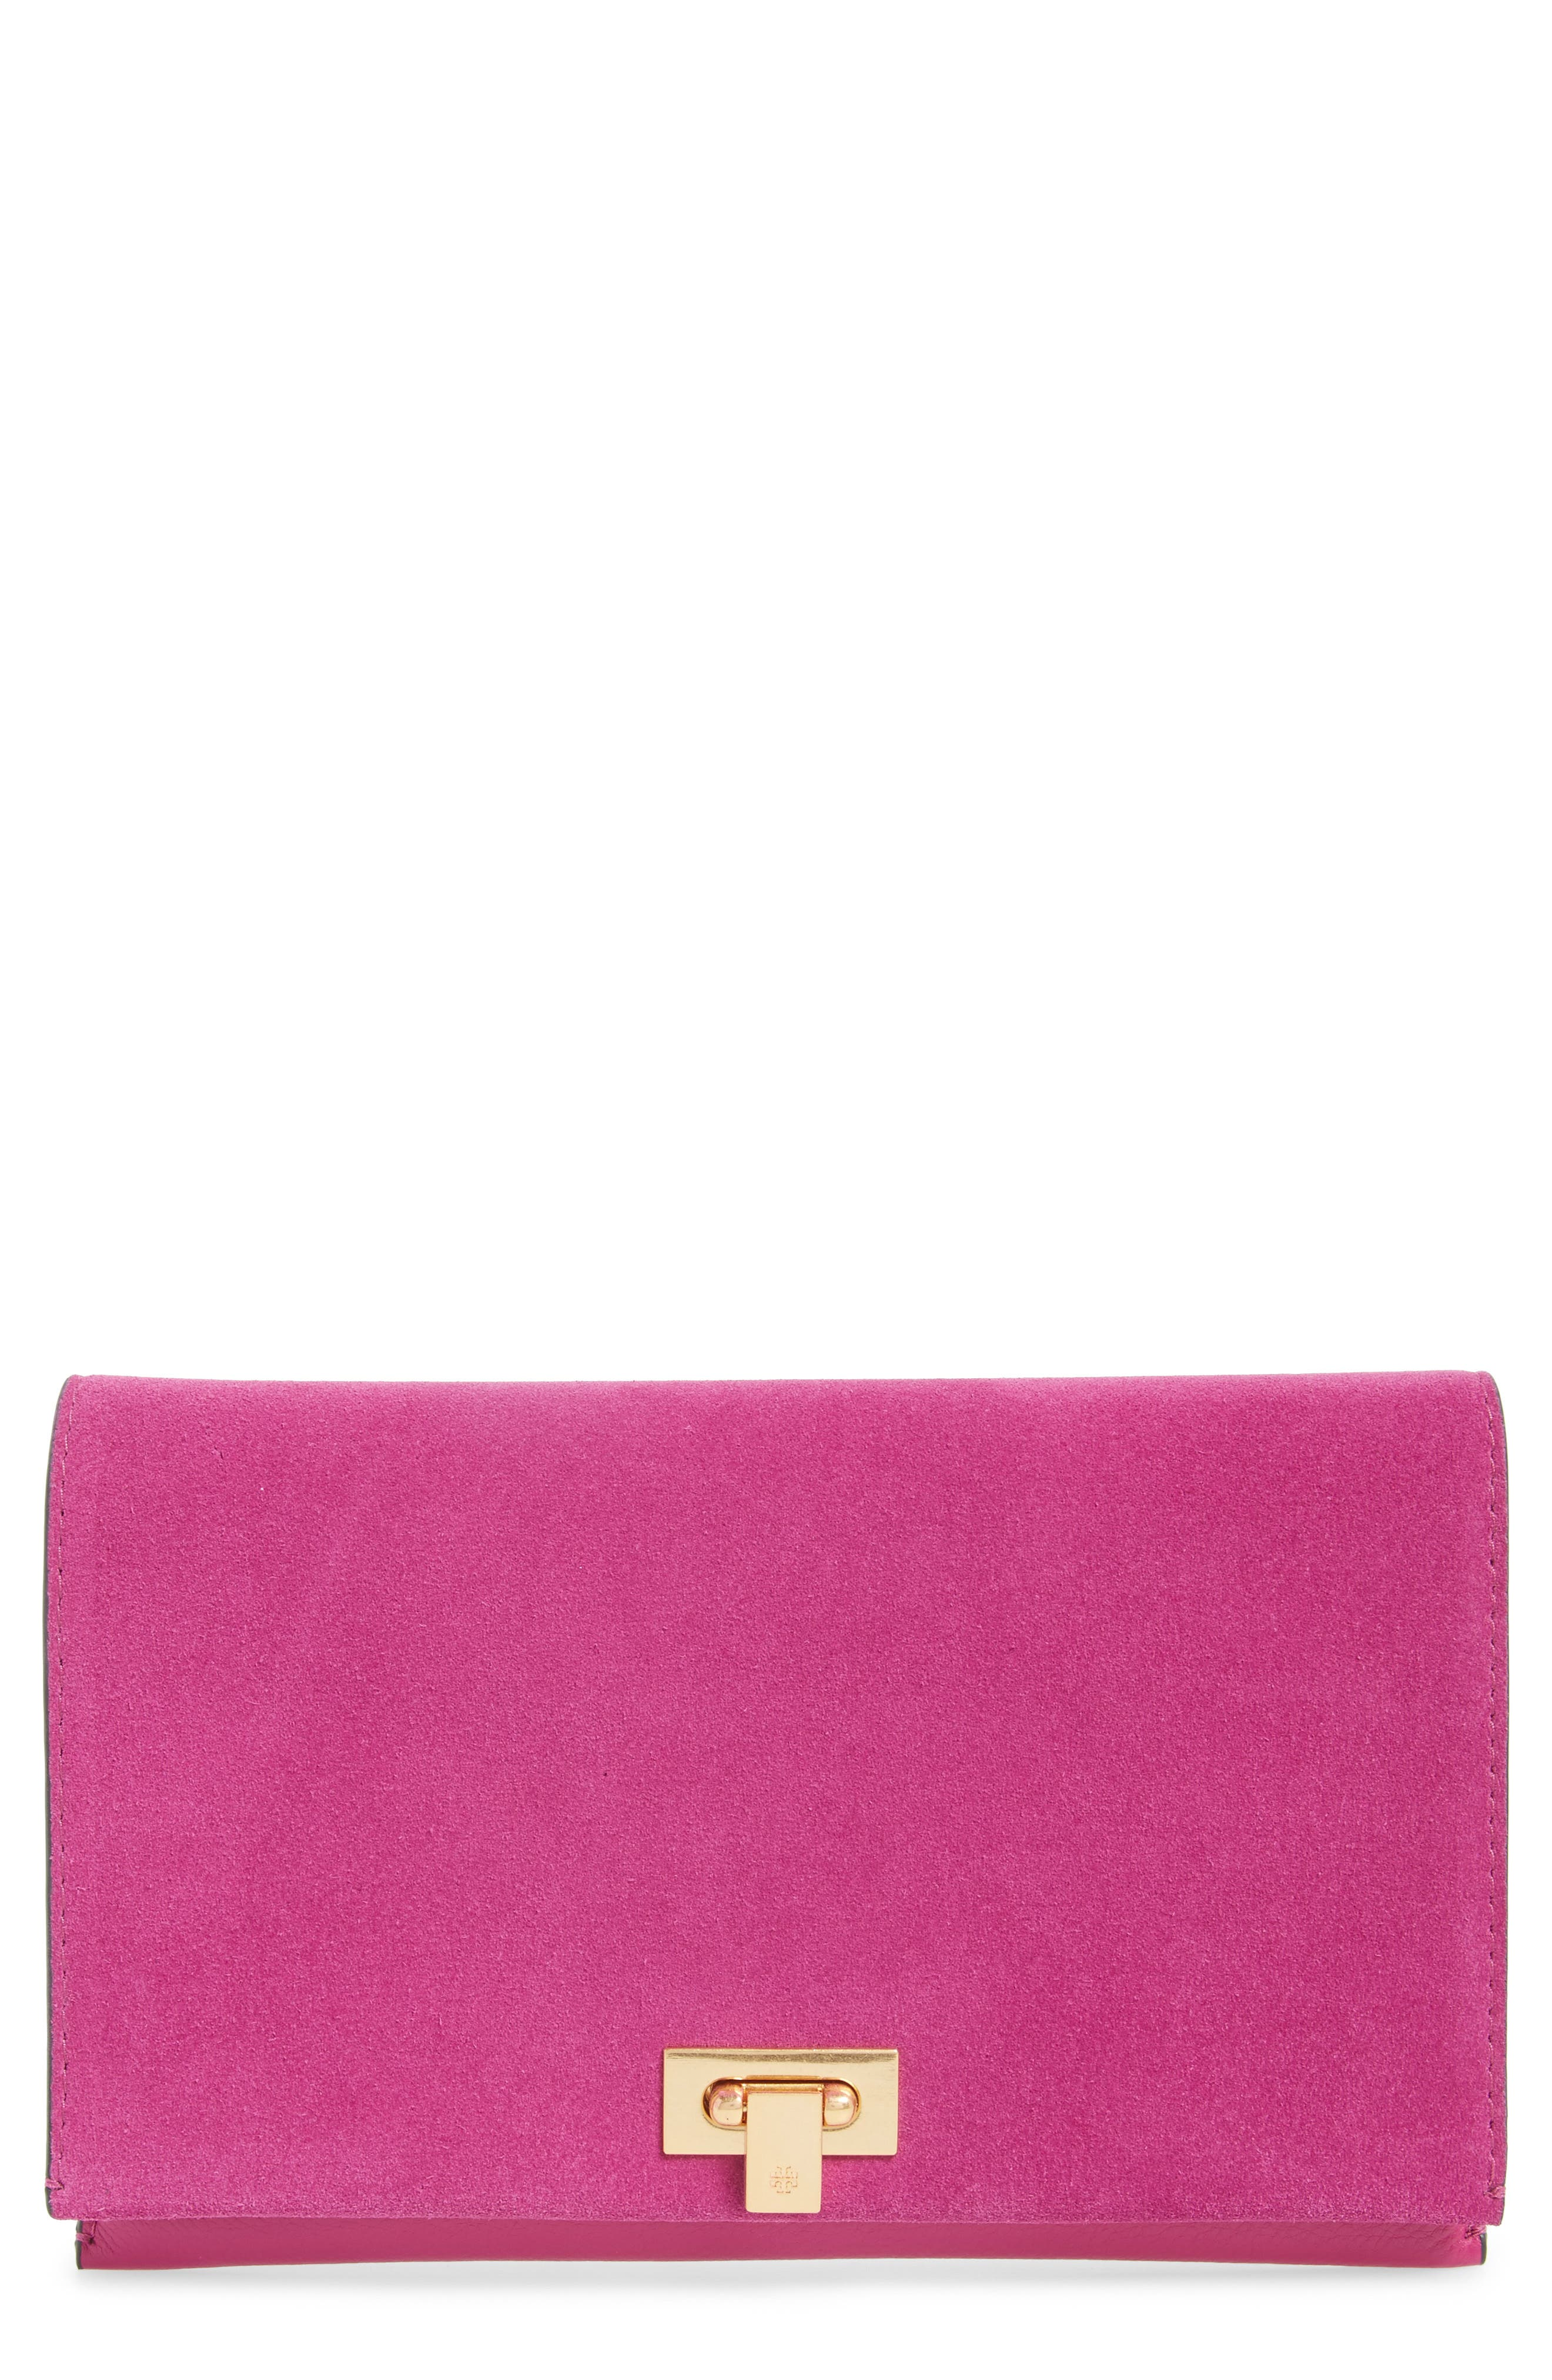 Tory Burch Carmen Leather Clutch